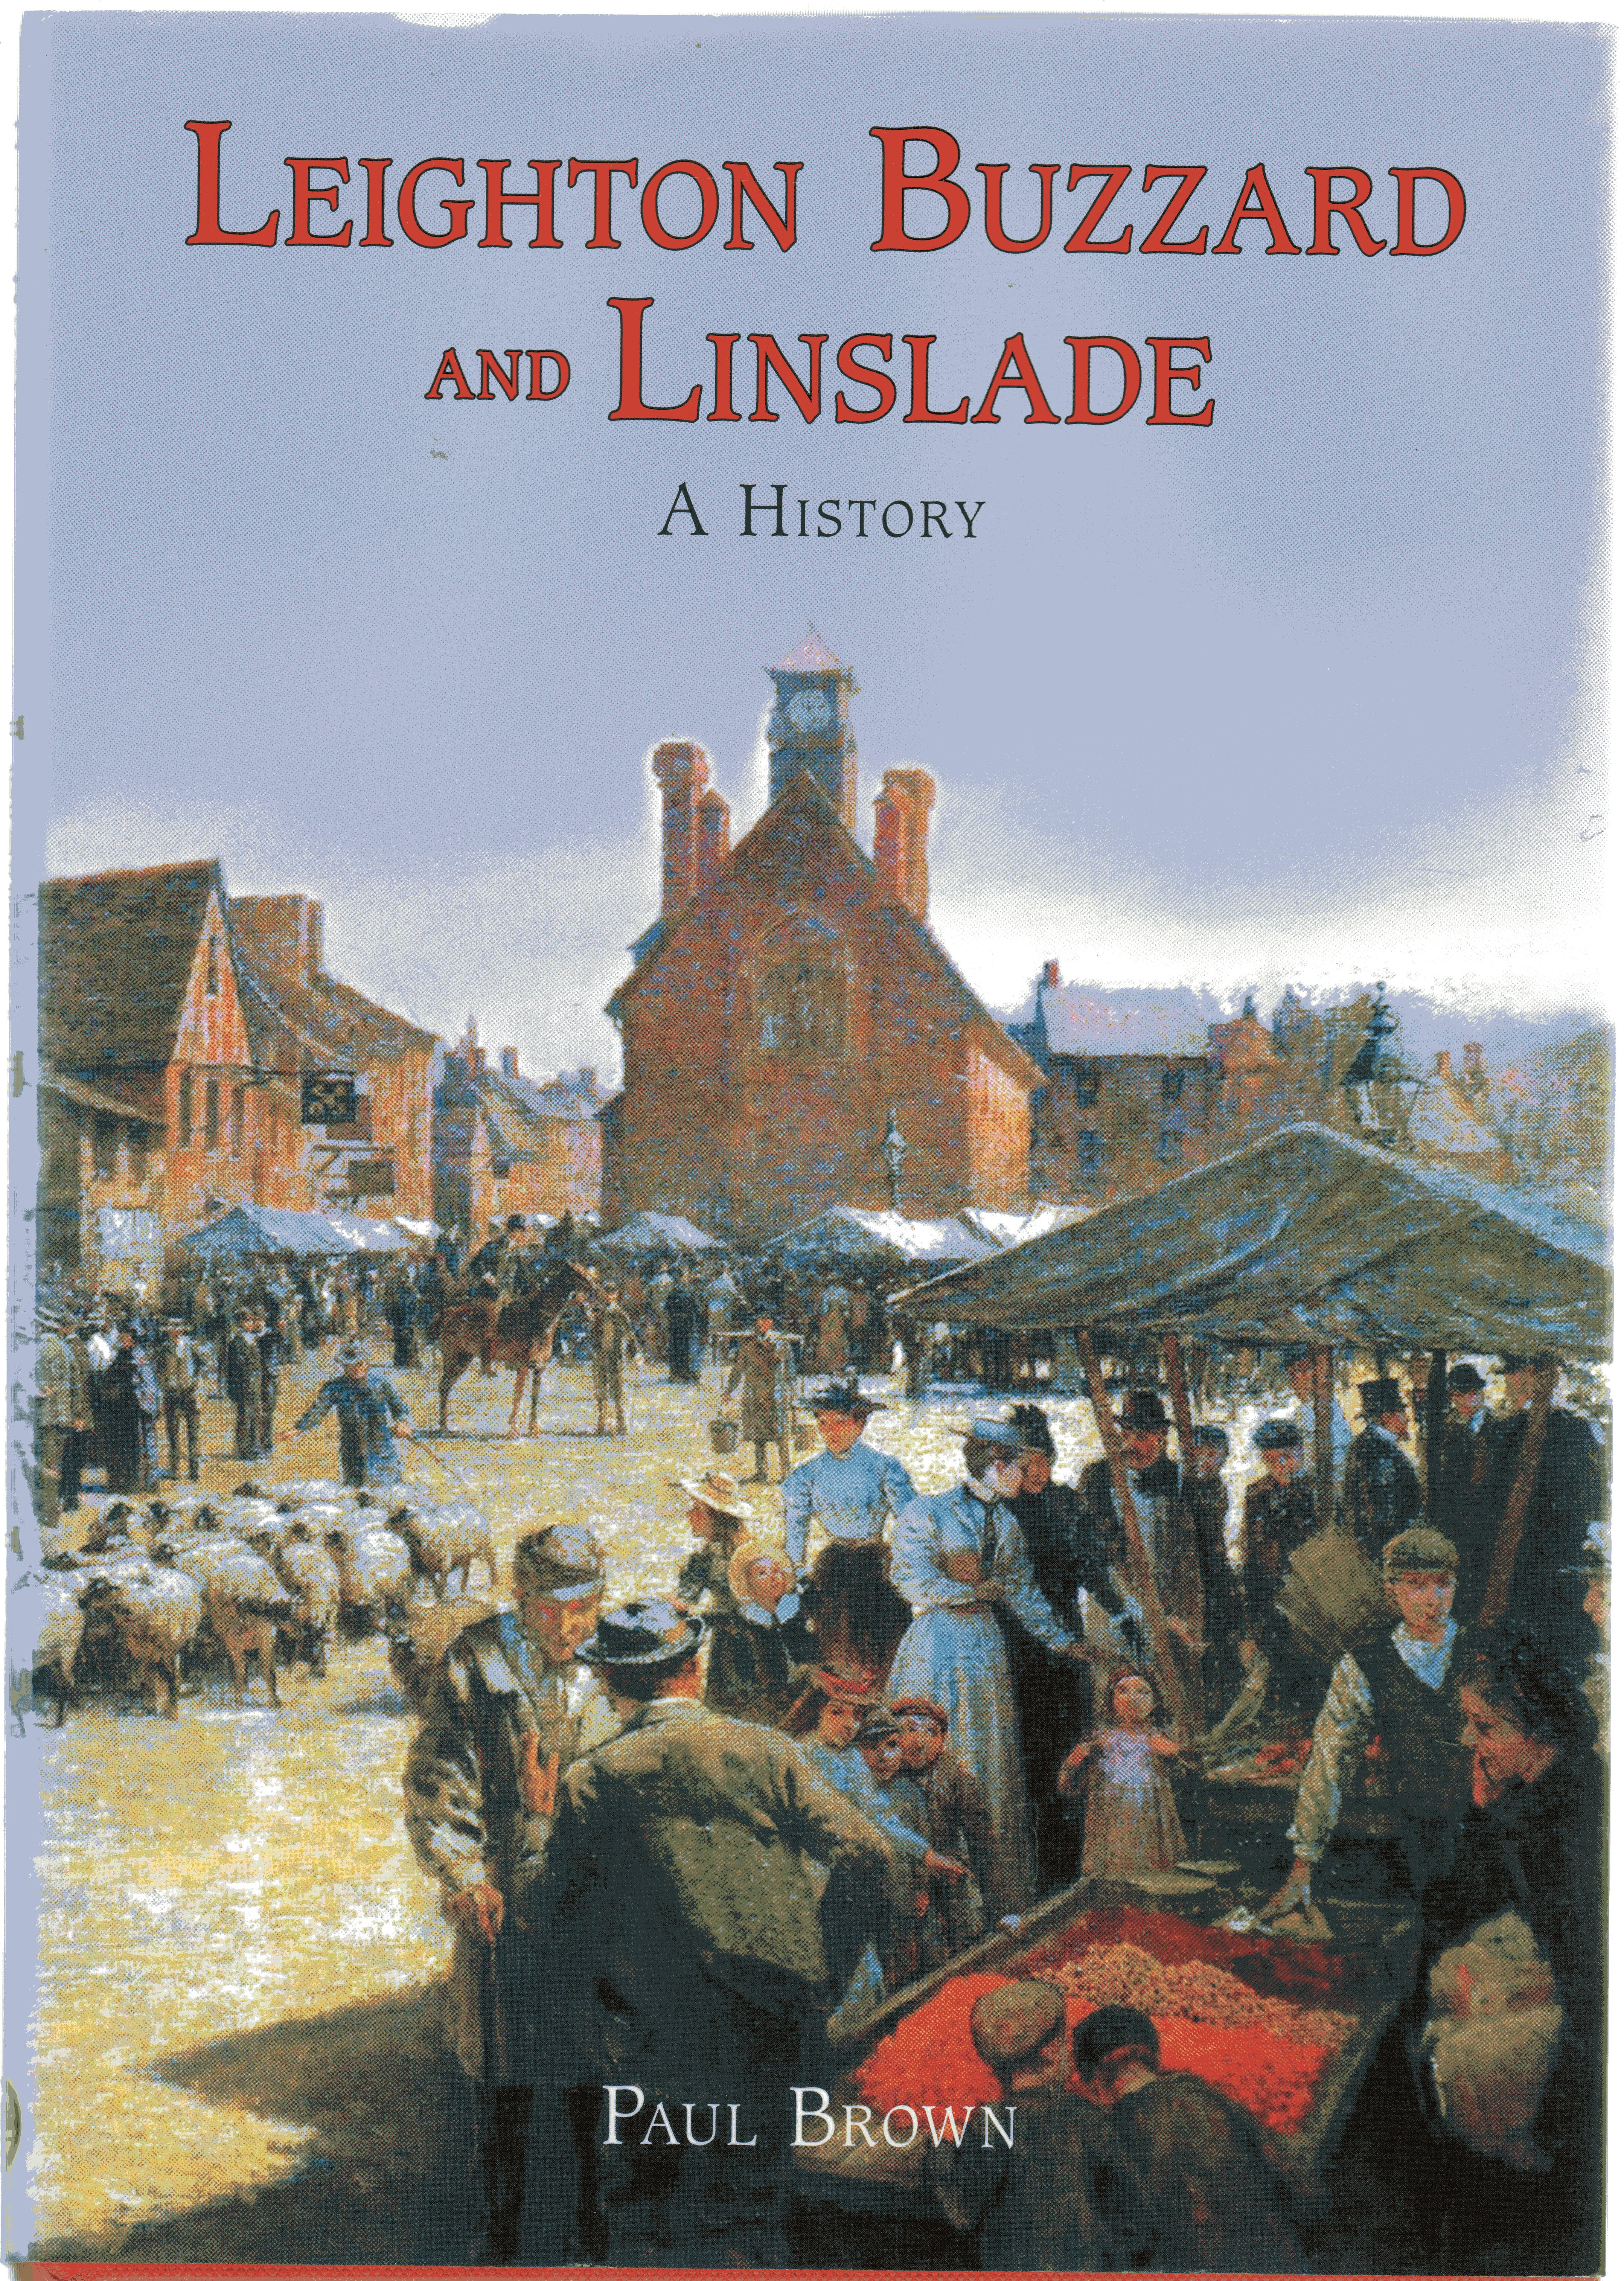 Image for Leighton Buzzard and Linslade : A History (SIGNED COPY)